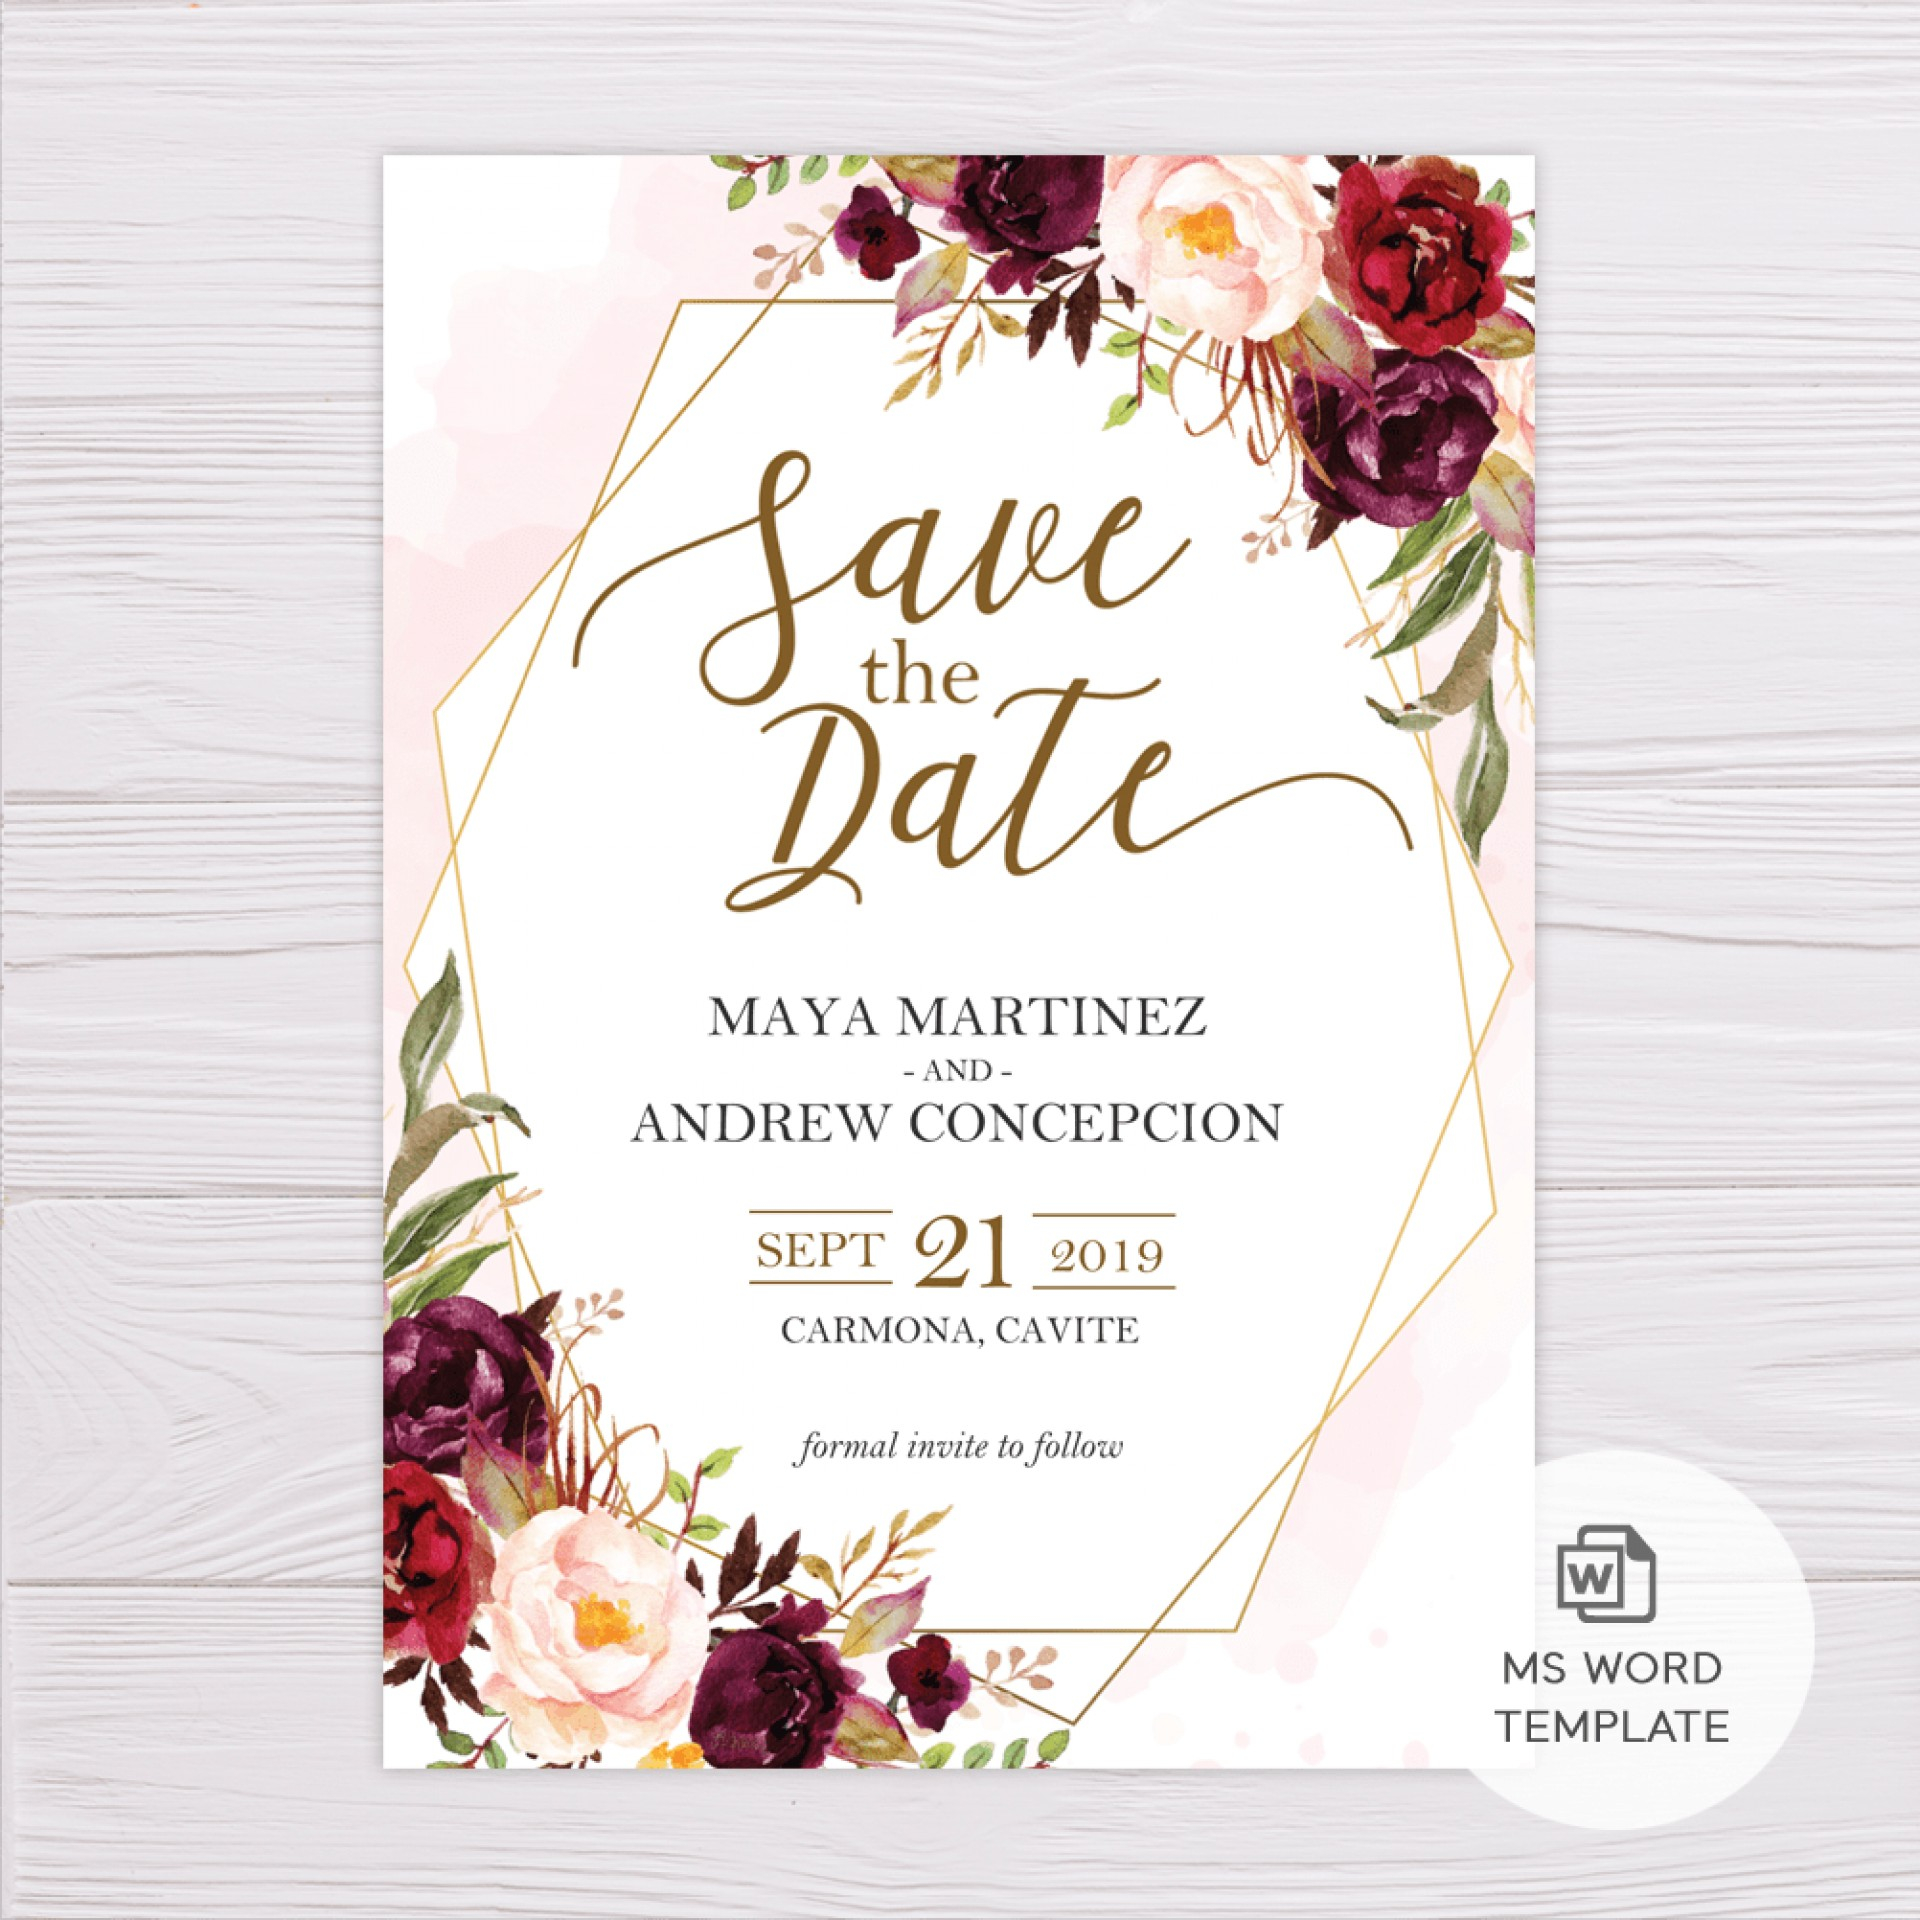 004 Save The Date Templates Word Template Frightening Ideas intended for Save The Date Templates Word